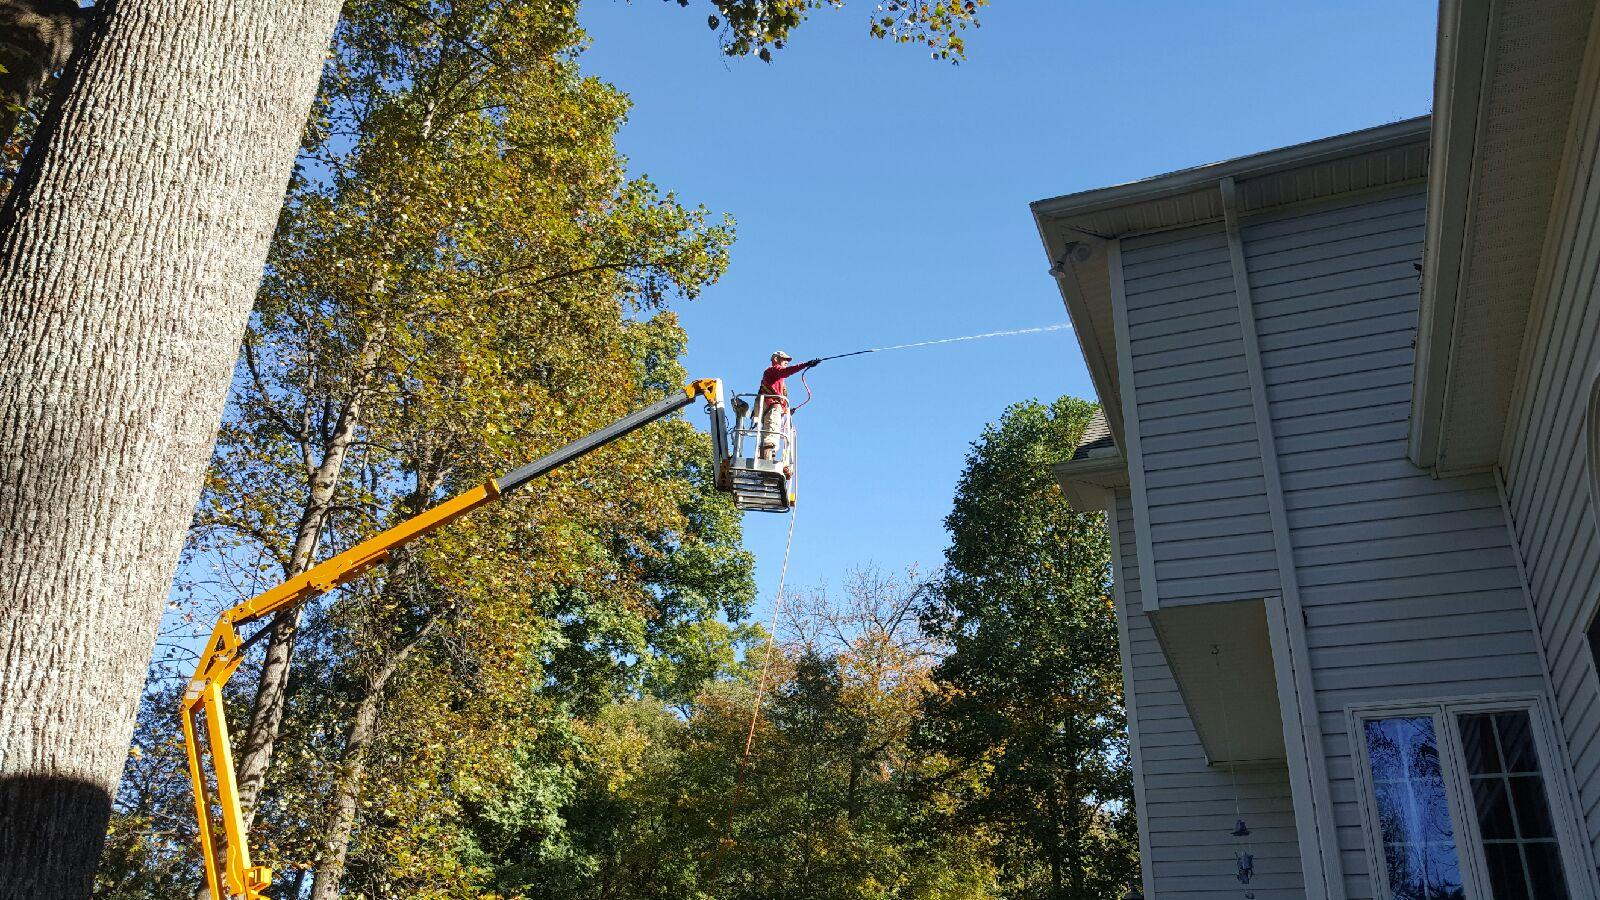 Boom Lift | Soft Wash Roof Company in Chambersburg PA